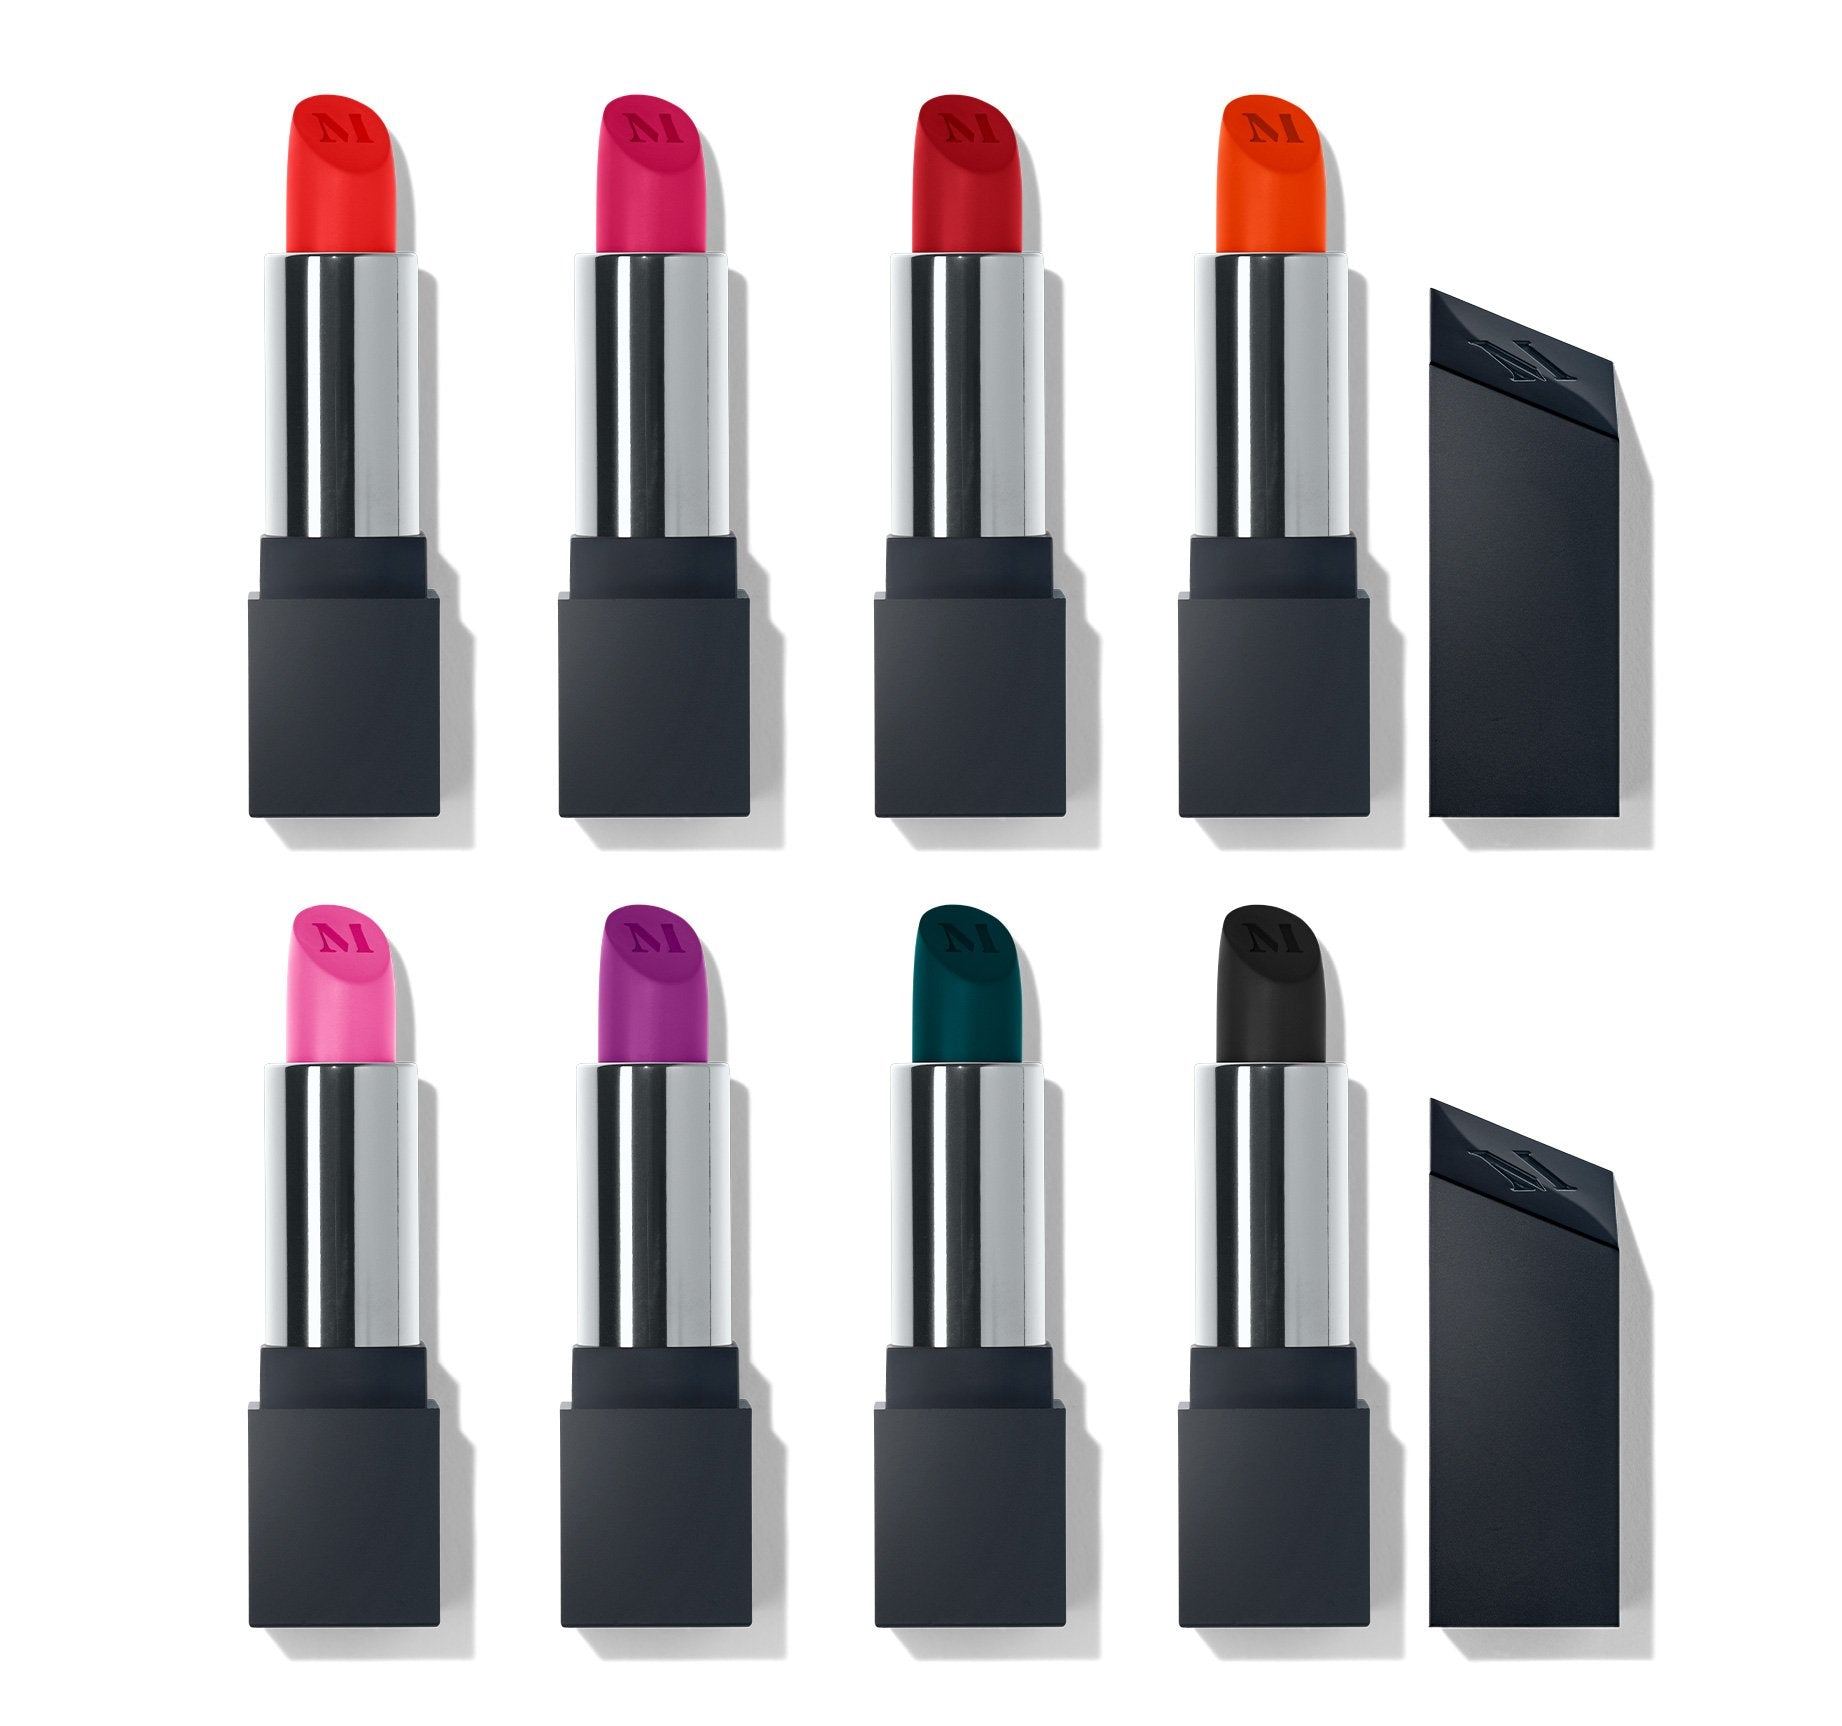 THE BOLD 8 MEGA MATTE LIPSTICK COLLECTION, view larger image